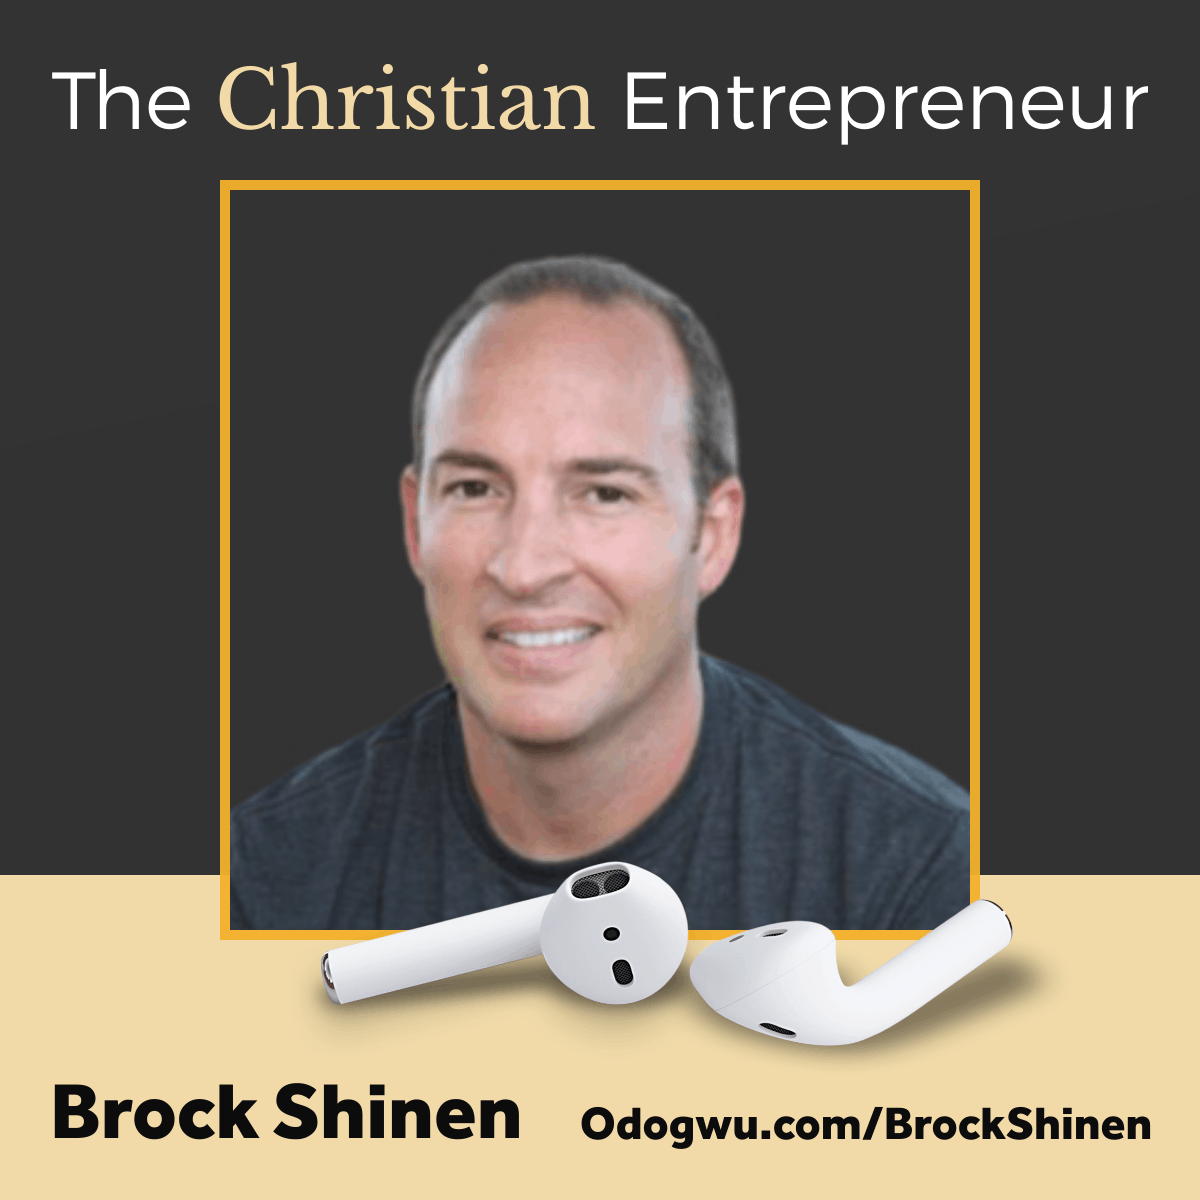 Brock Shinen Shares You Can Dream, Plan, Execute and Grow As A Christian Entrepreneur